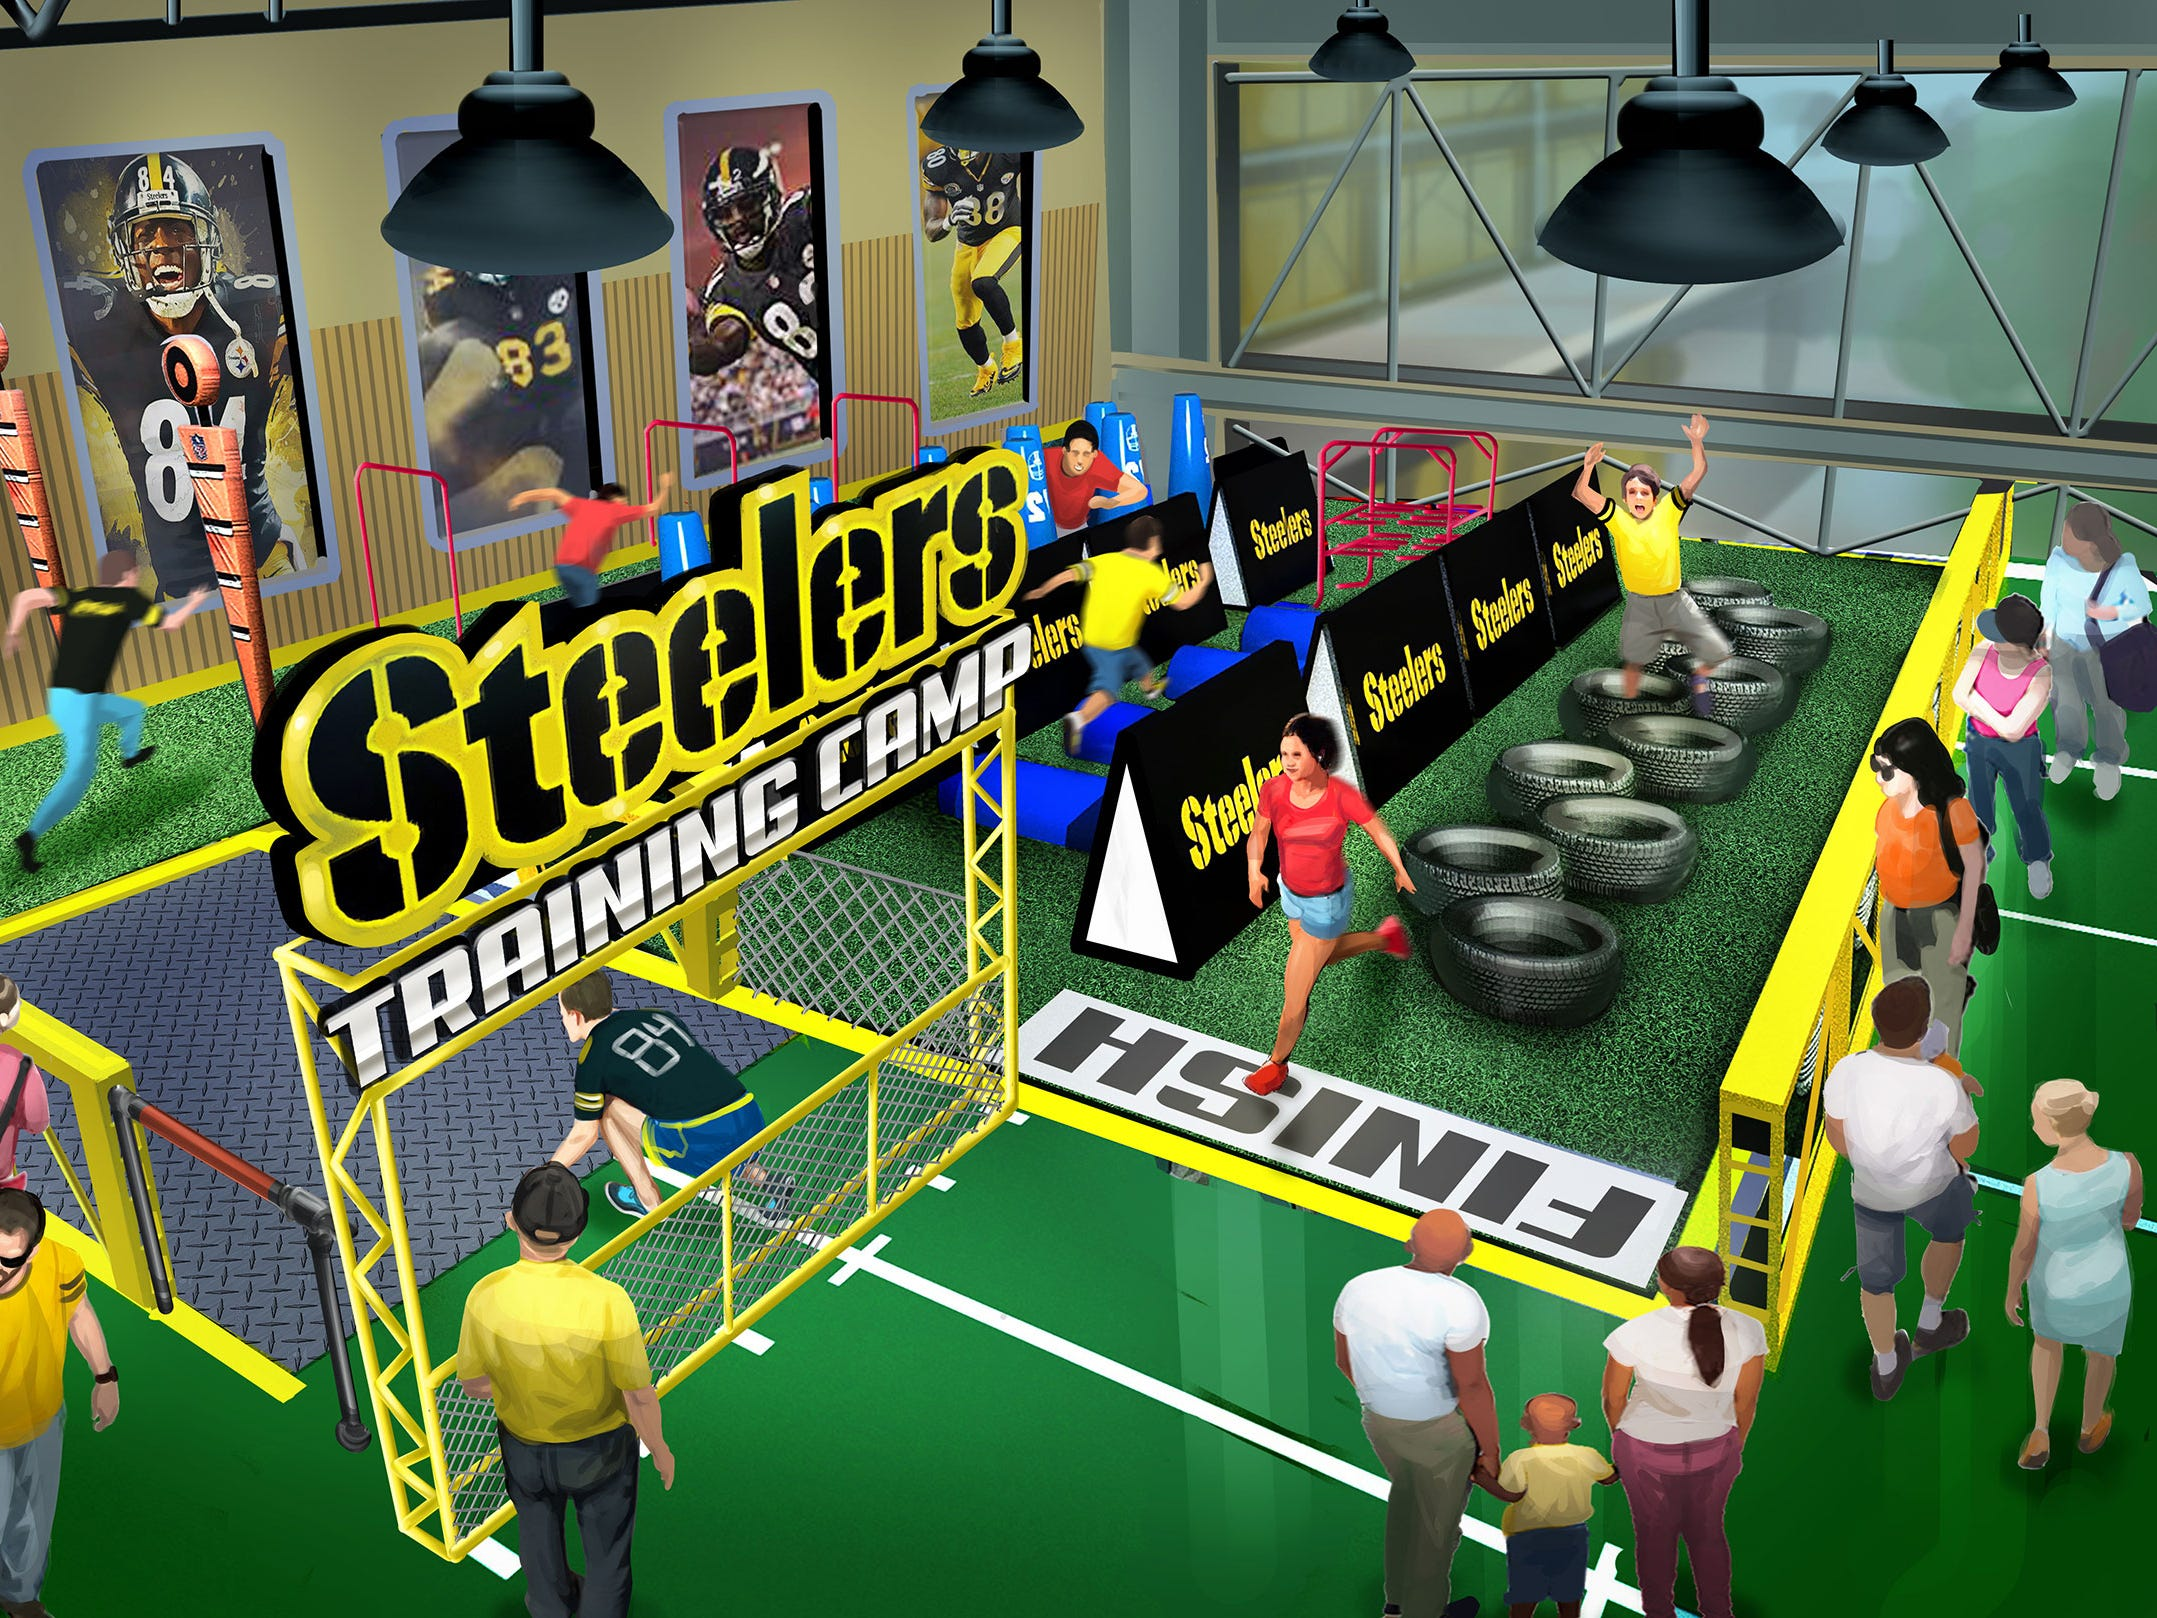 After Steel Curtain's wobbly passengers regain their equilibrium, they could head over to the Steelers Experience, a building packed with drills and activities that will mimic an NFL training camp or scouting combine.